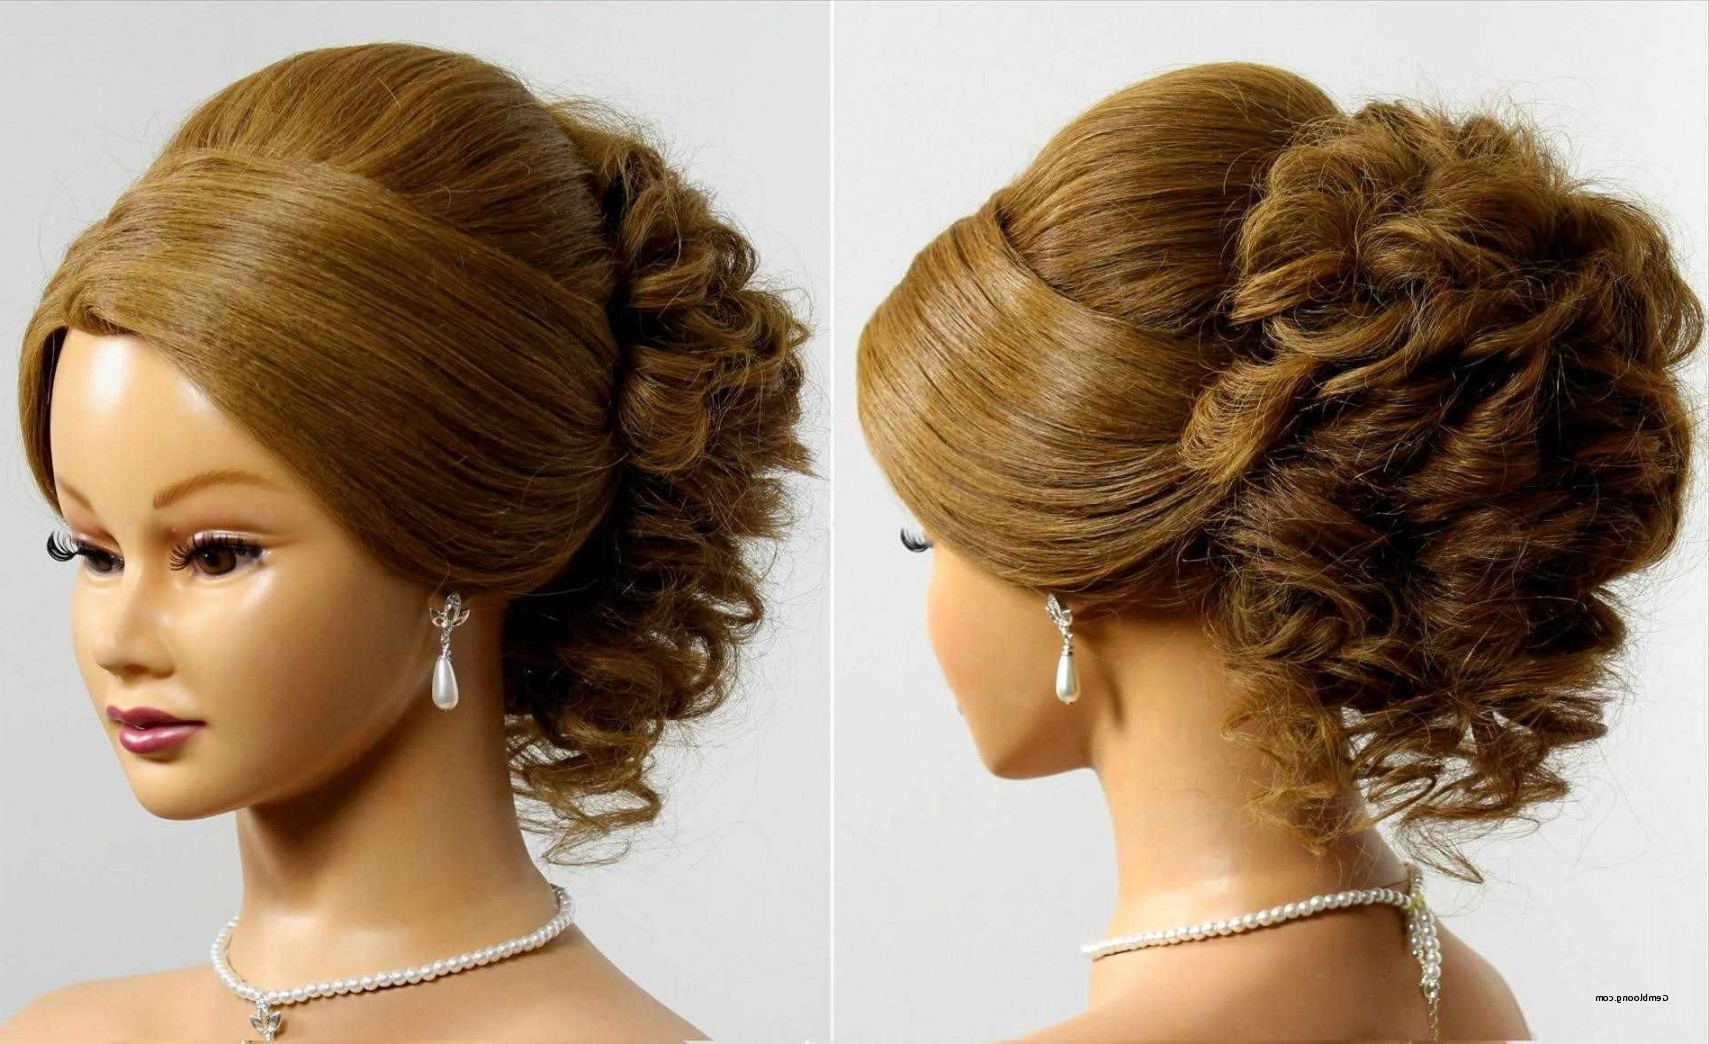 Preferred Wedding Hairstyles For Round Face With Indian Wedding Hairstyles For Round Faces Inspirational Indian (View 5 of 15)